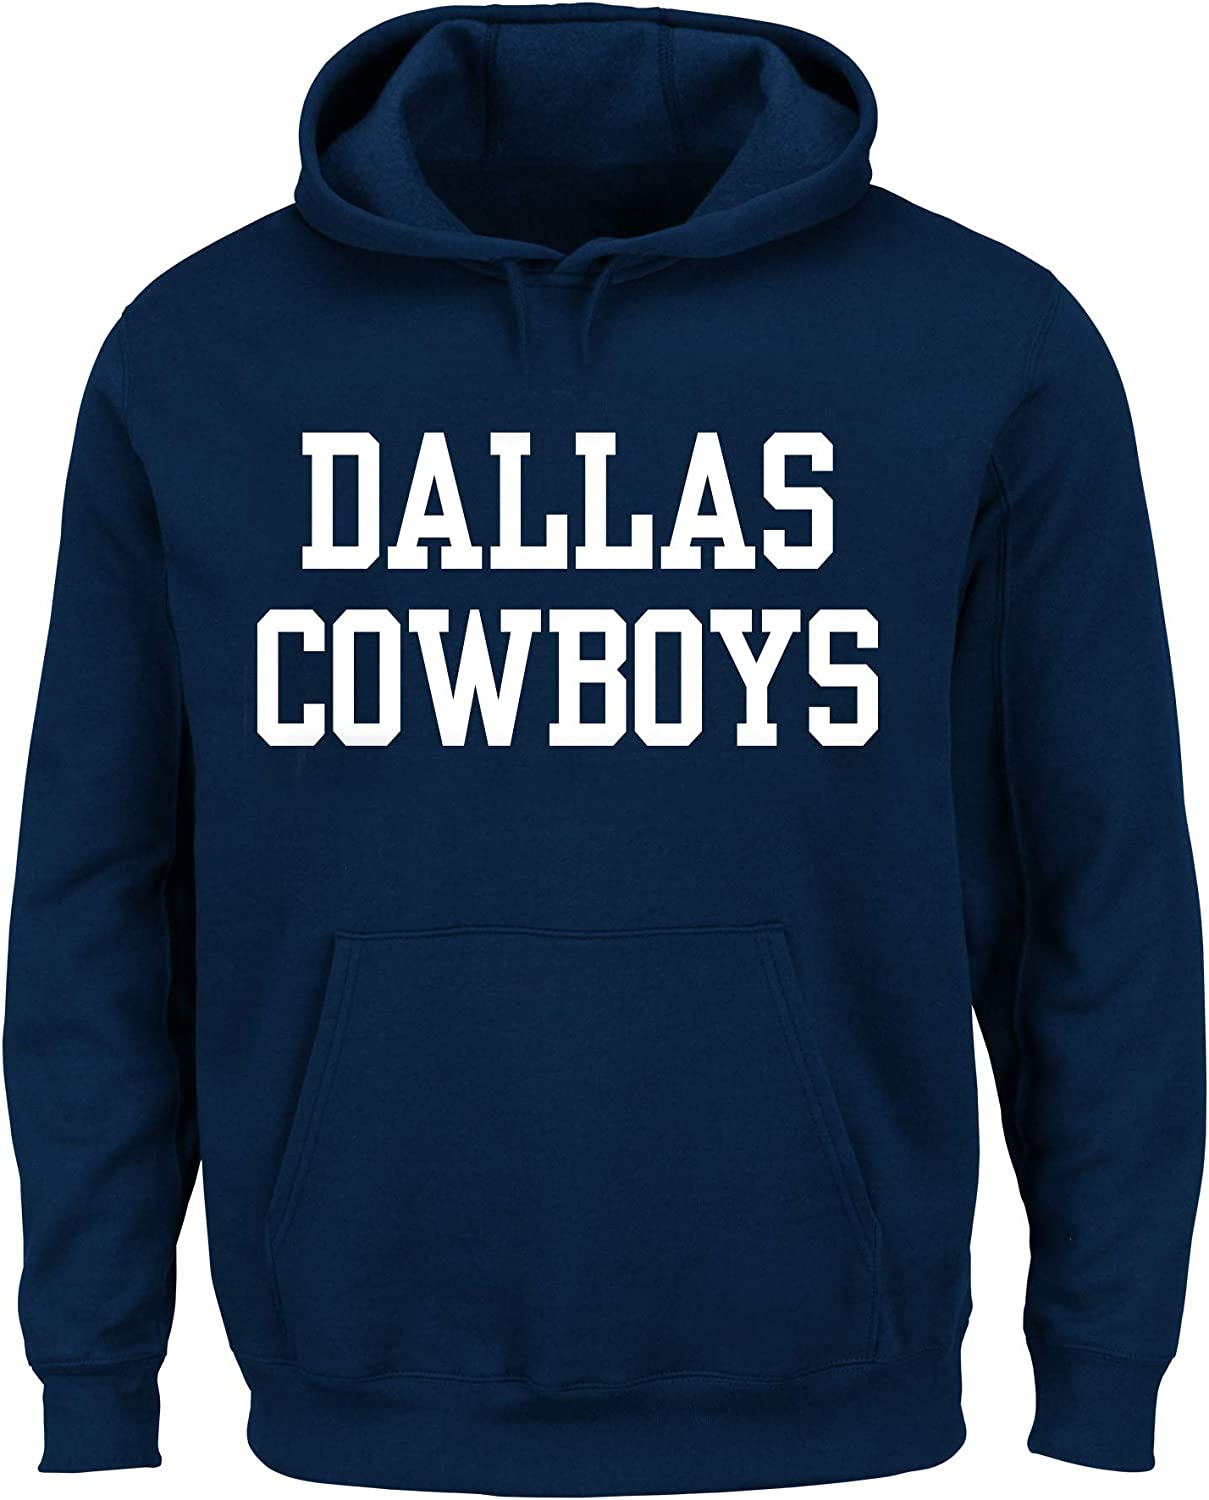 Navy 2X Dallas Cowboys Mens Big /& Tall Fleece Hood